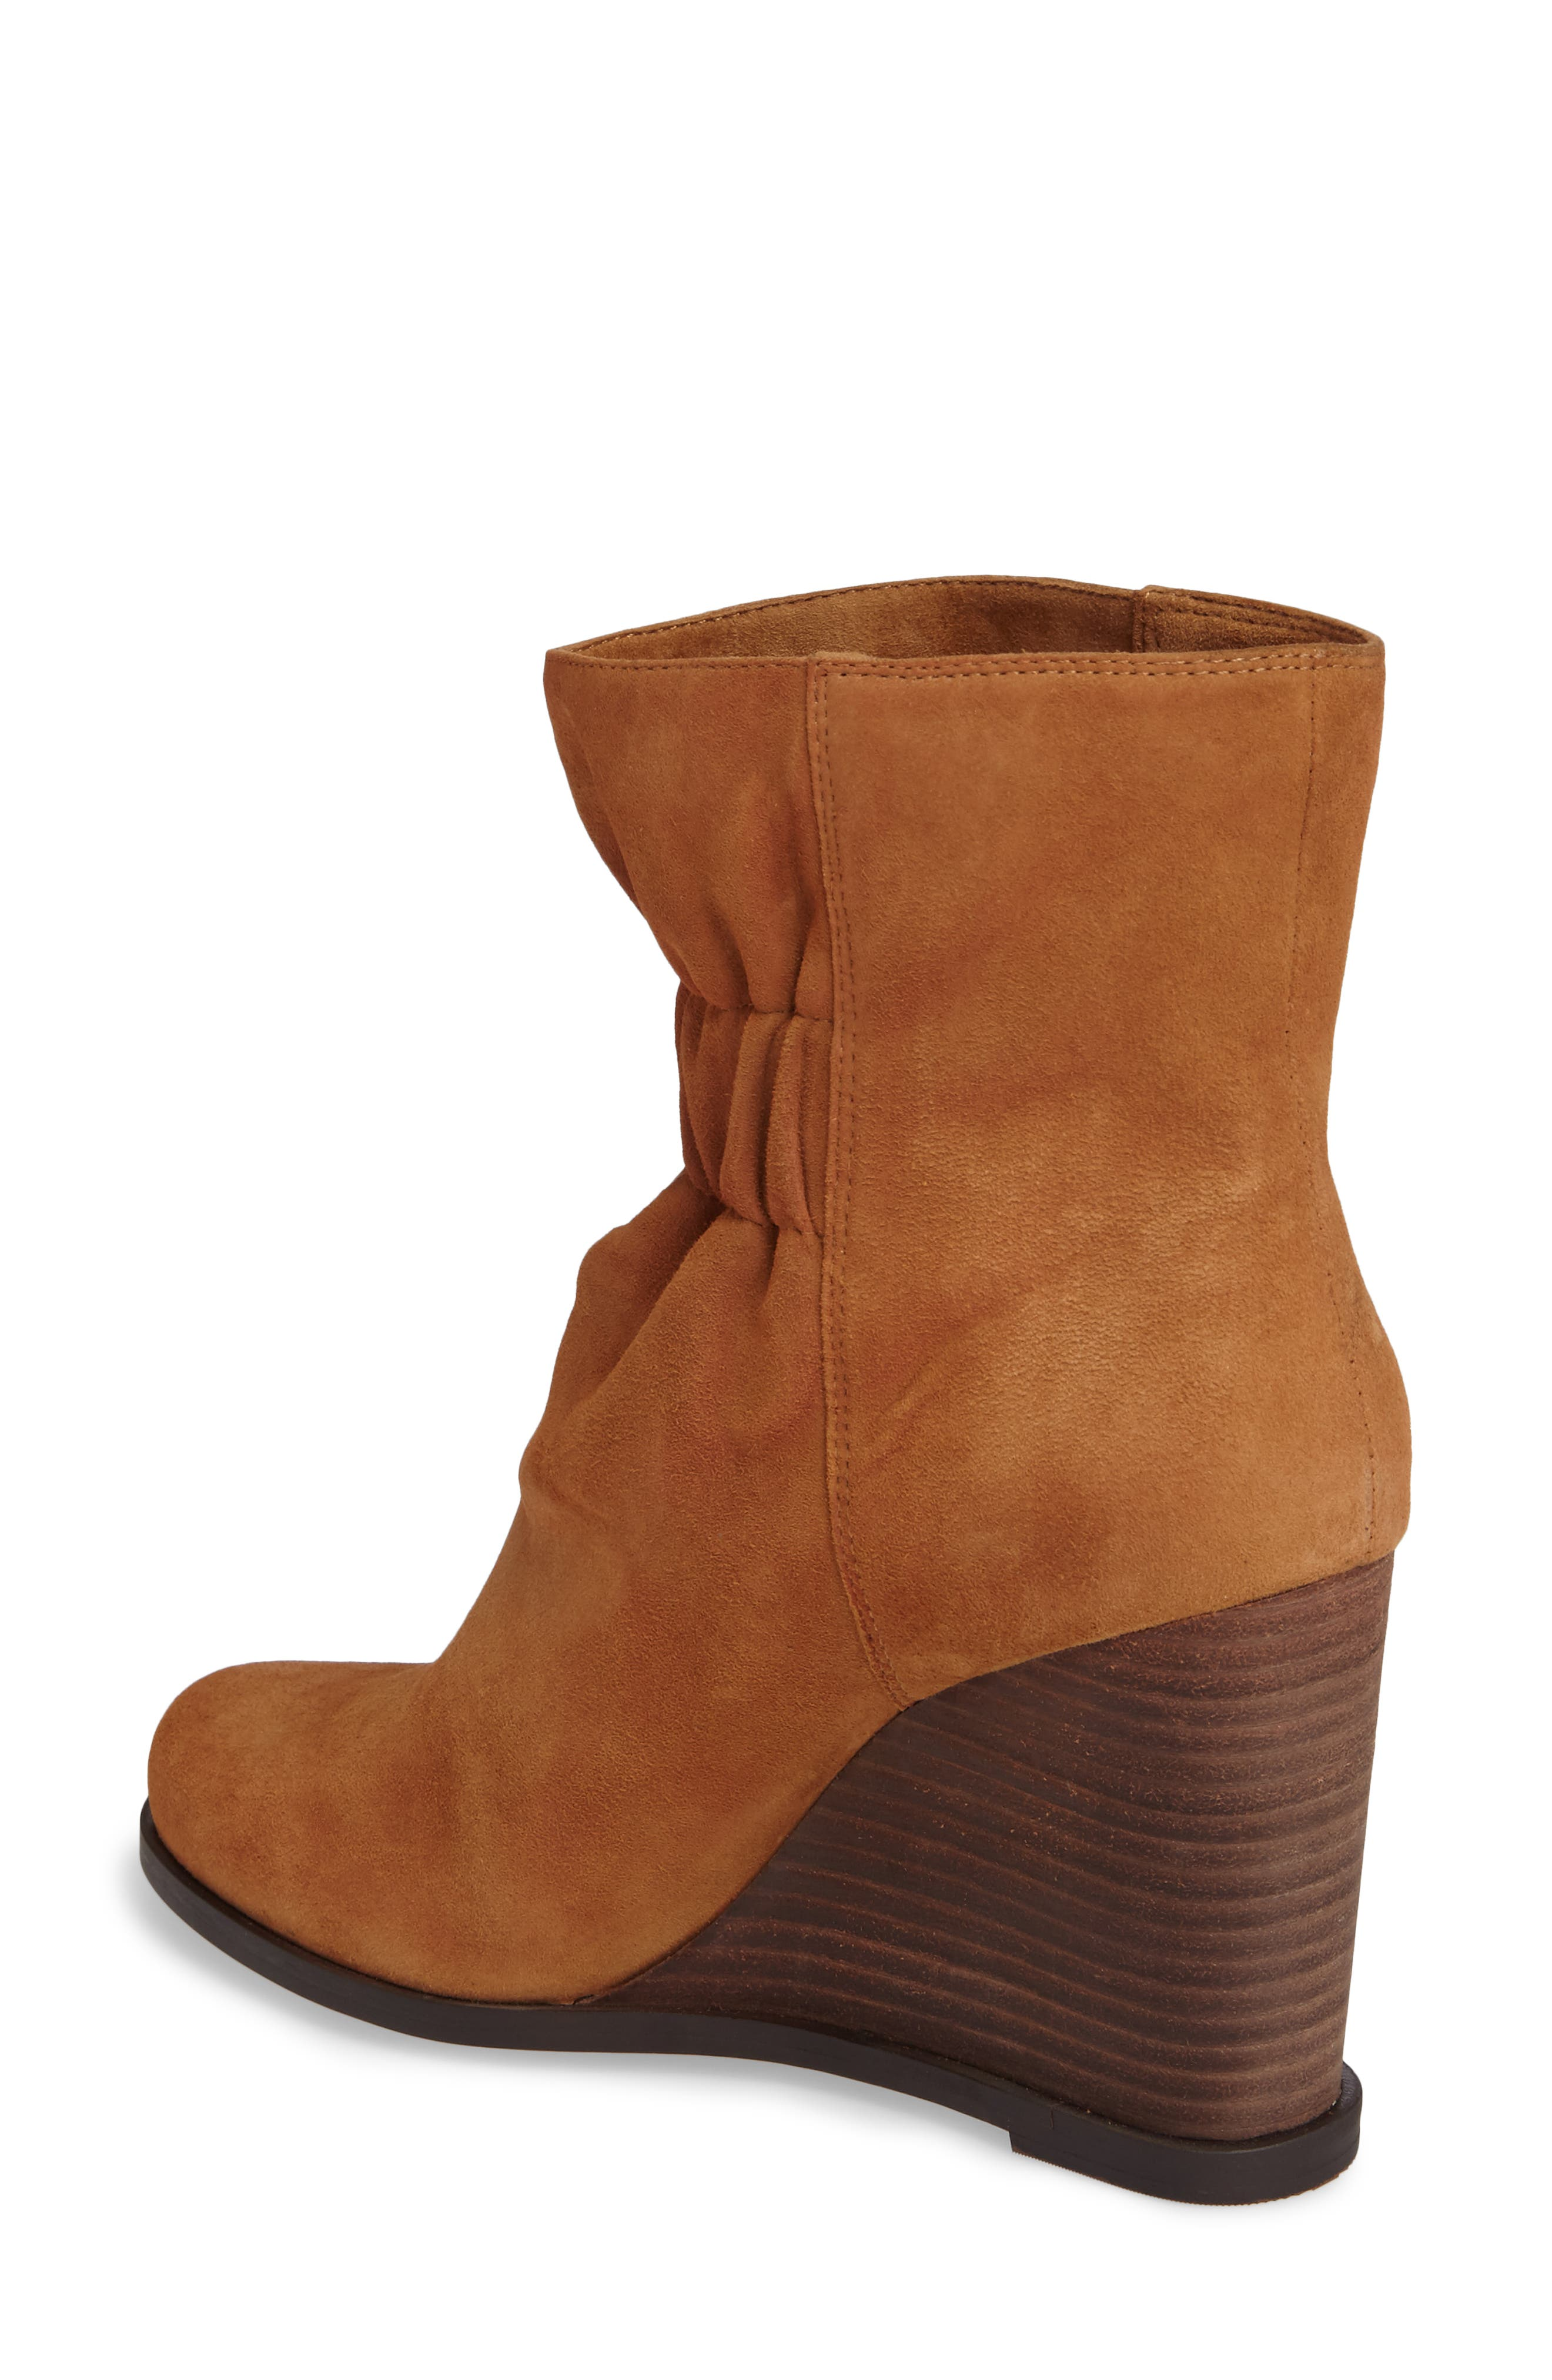 Alternate Image 2  - Splendid Rebecca Wedge Bootie (Women)